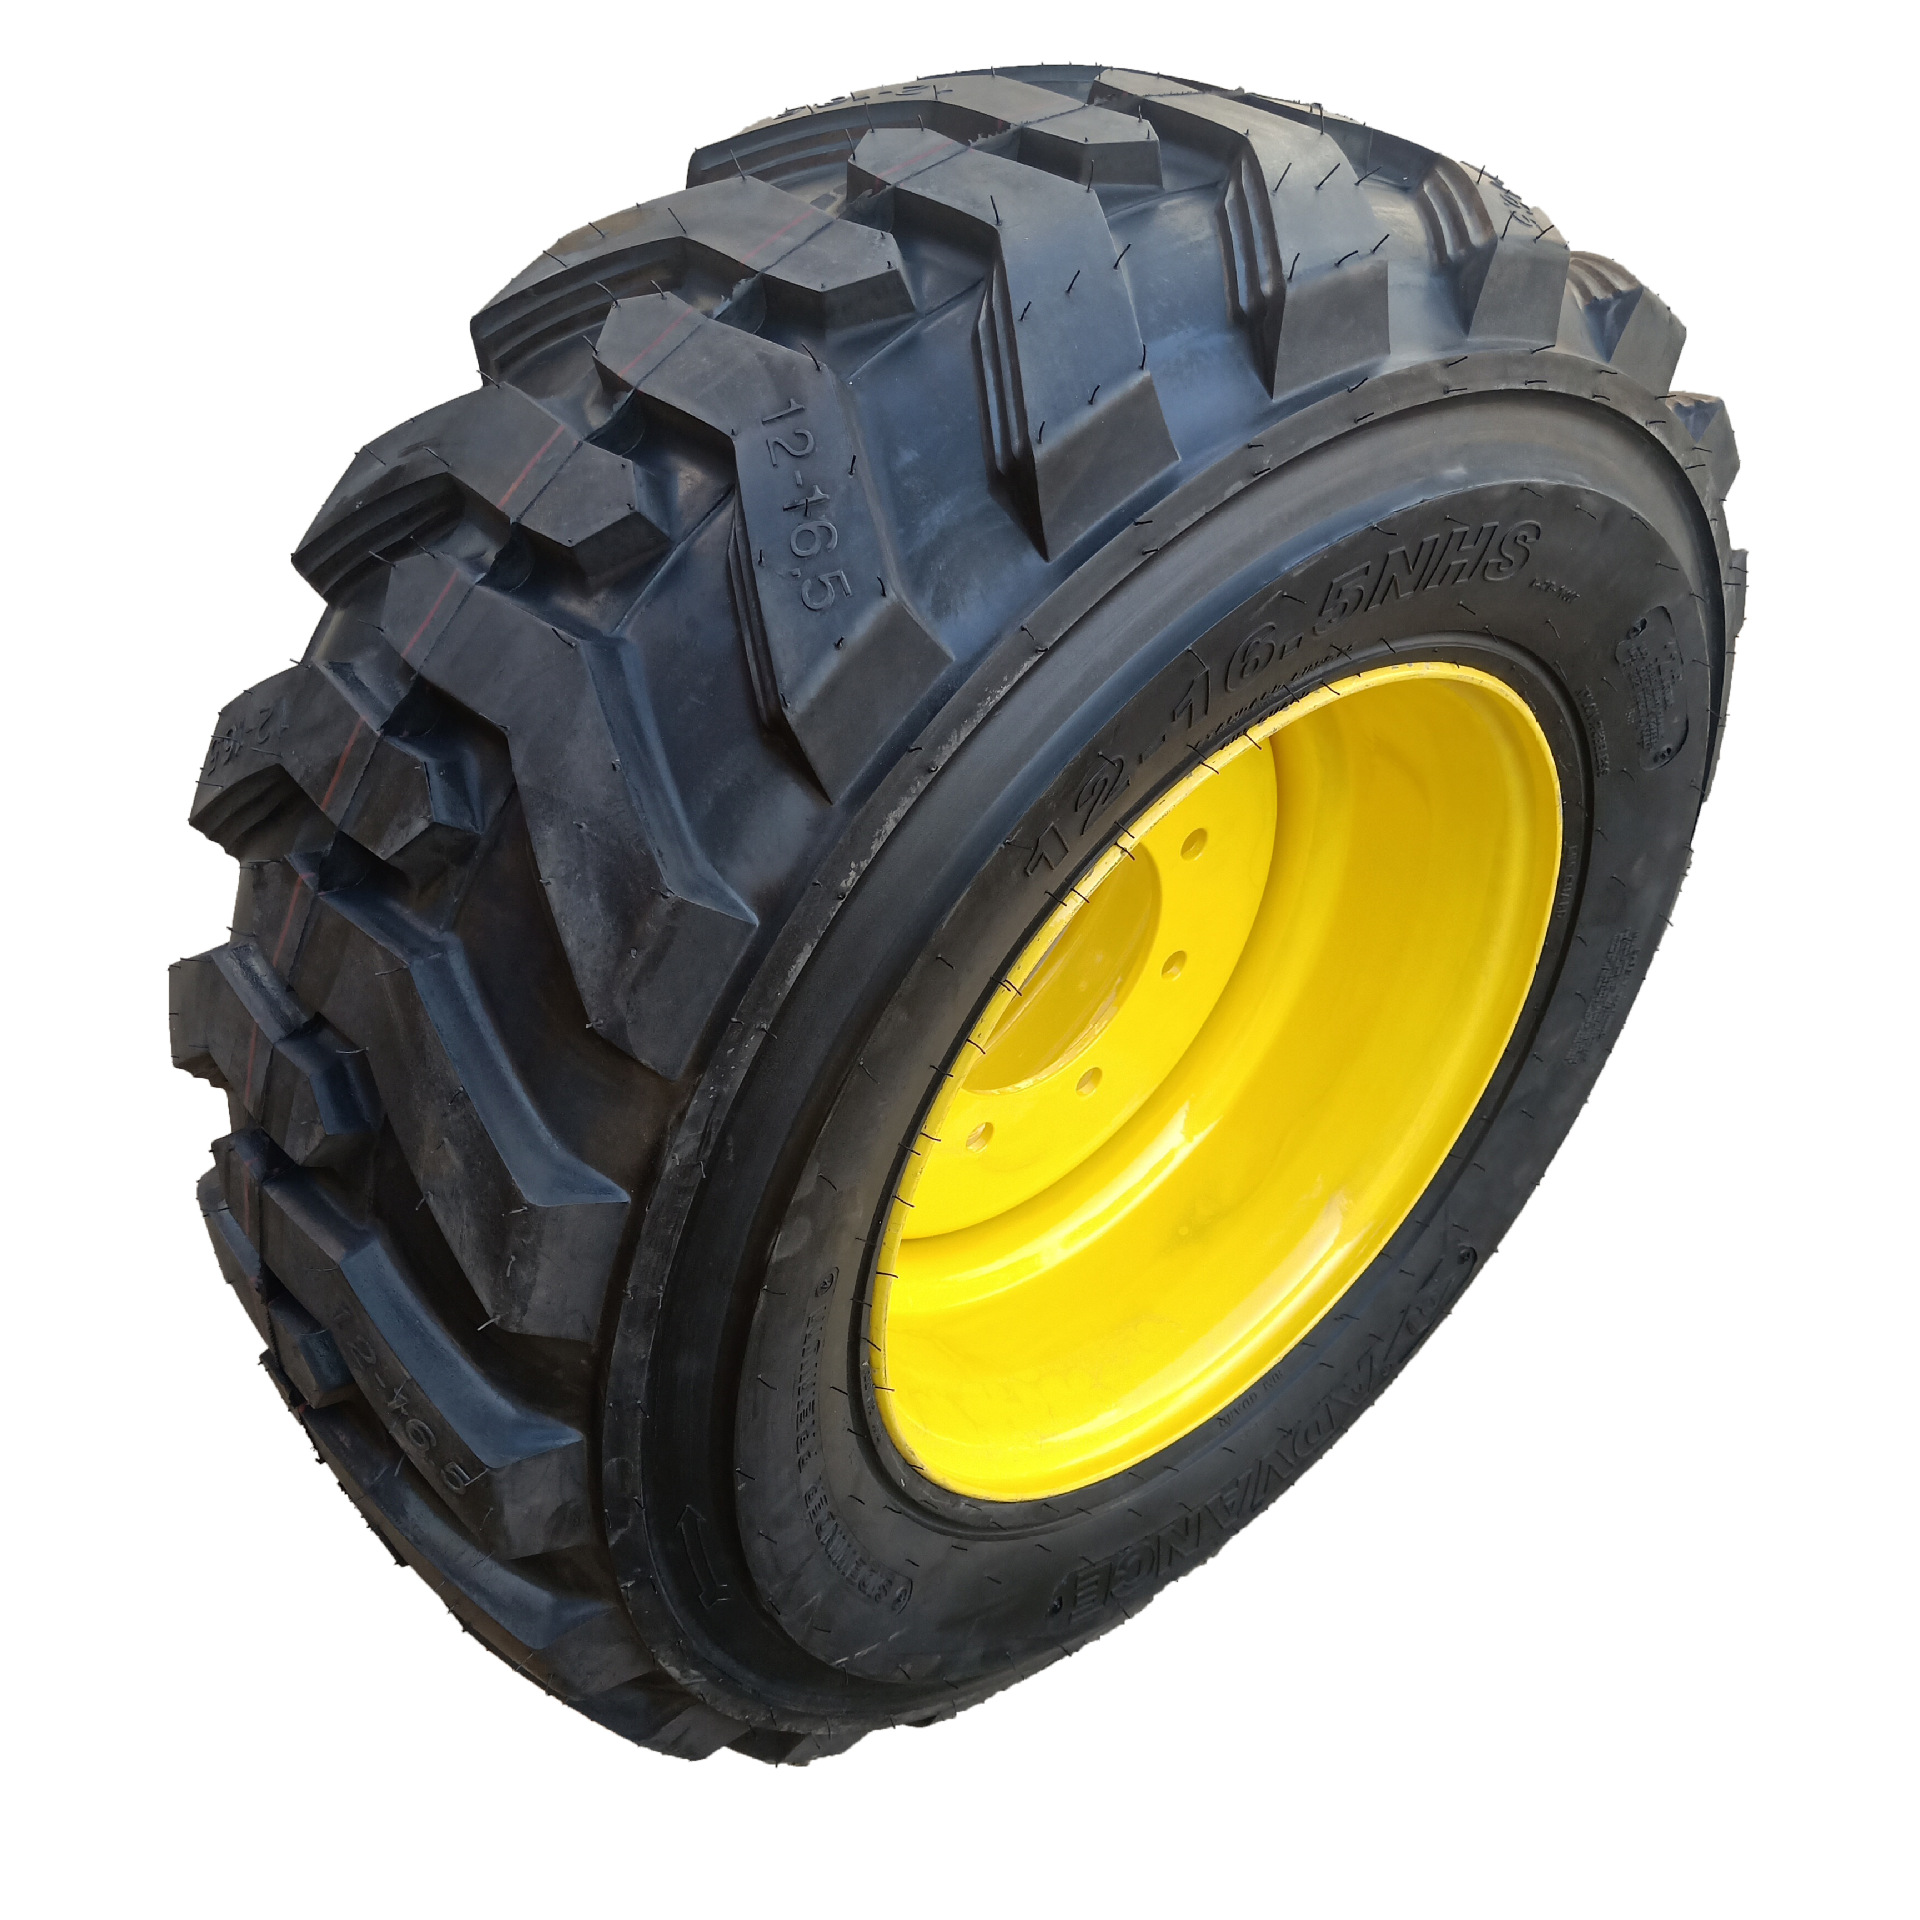 Skid steer loader tires 12-16.5 factory wholesale can be equipped with steel ring construction machi